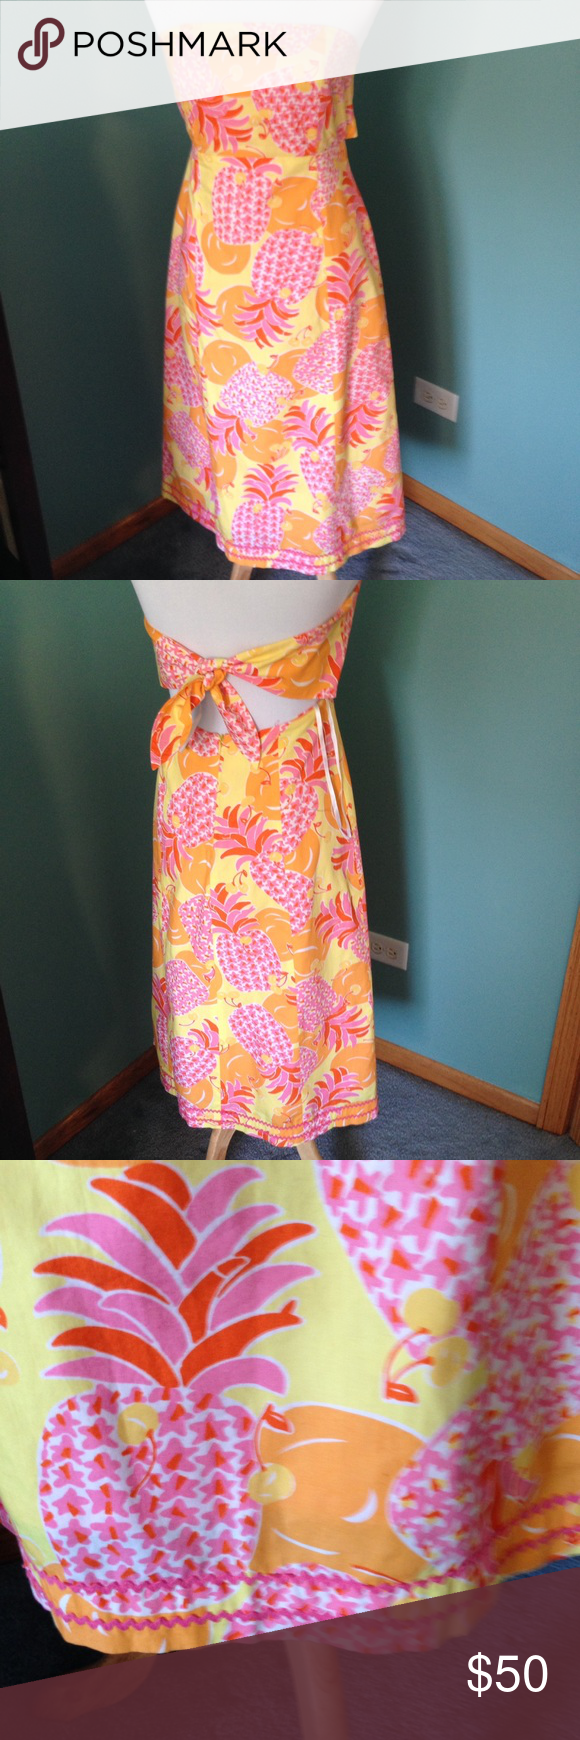 "Lilly Pulitzer dress Pineapple designed dress, strapless, tie back & zip closure. Very good condition. Length 36"" Lilly Pulitzer Dresses Strapless"